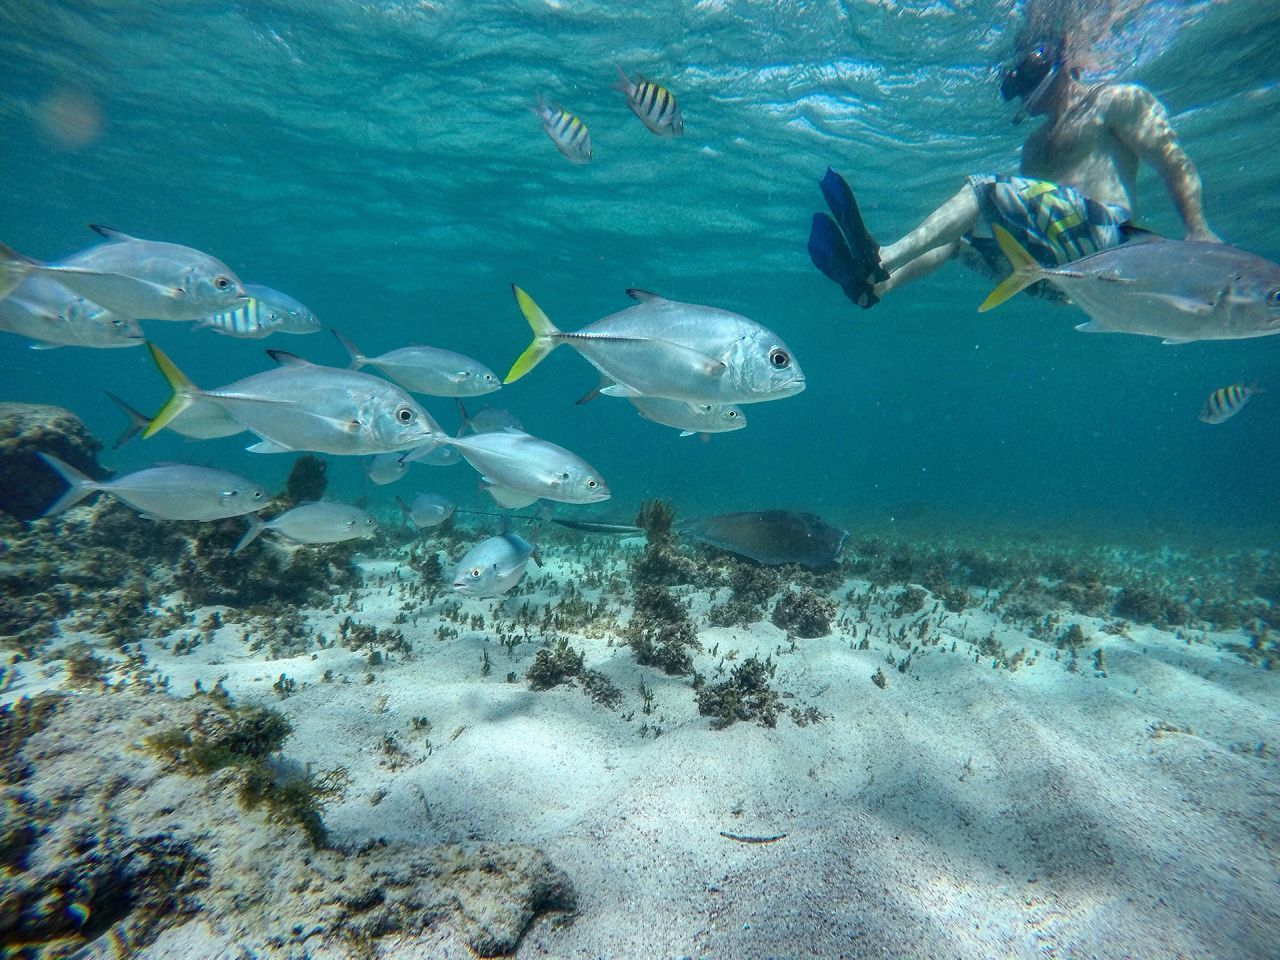 water, sea, swimming, blue, sea life, animal themes, animals in the wild, underwater, fish, wildlife, flying, nature, undersea, high angle view, beauty in nature, medium group of animals, day, sunlight, outdoors